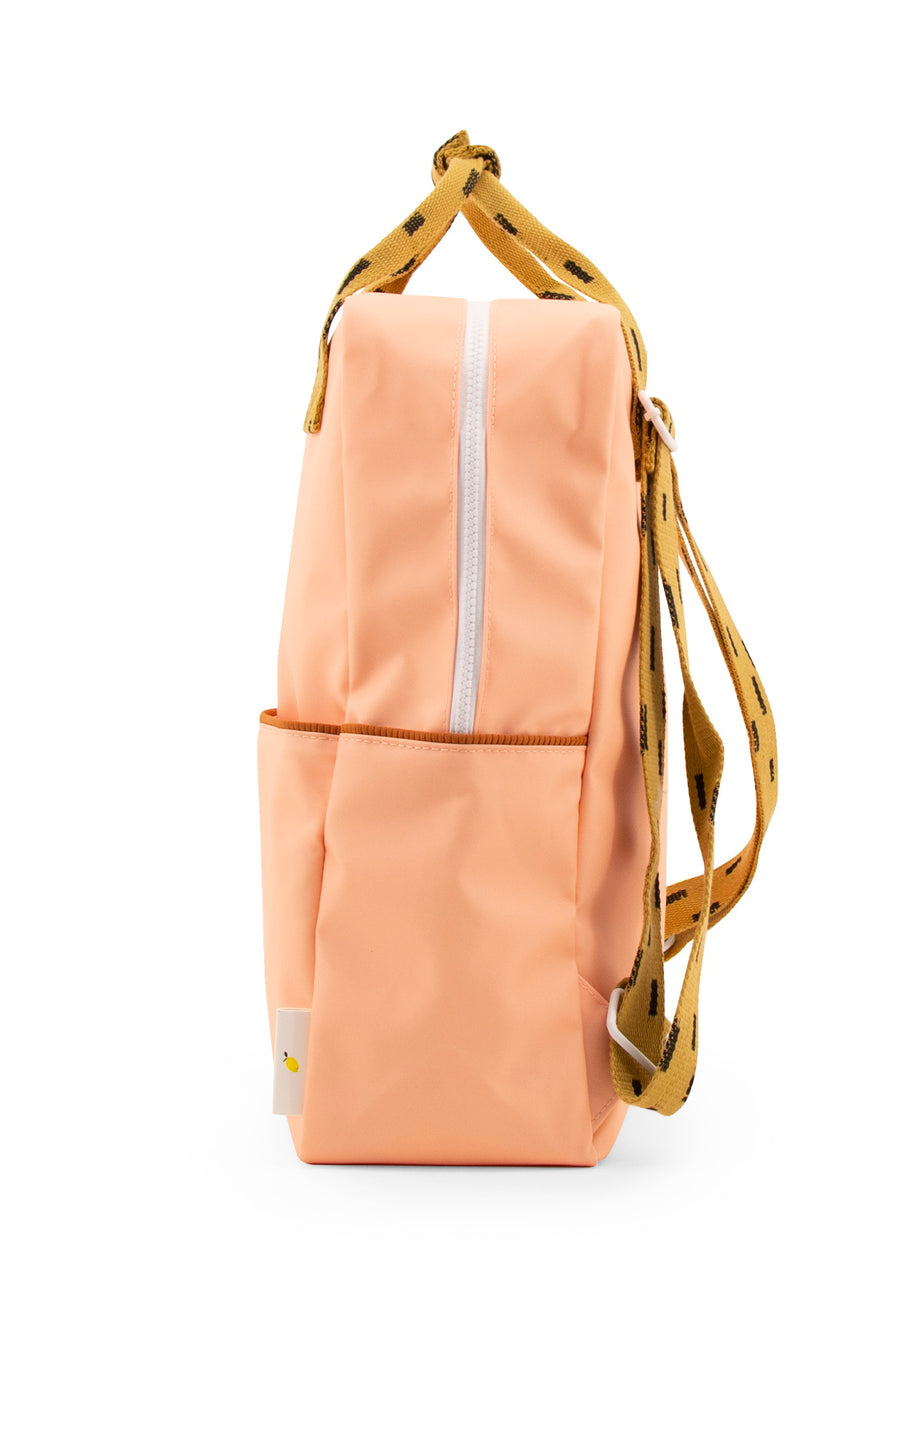 Sticky Lemon Sprinkles Collection Large Backpack, Lemonade Pink/Panache Gold/Apricot Orange